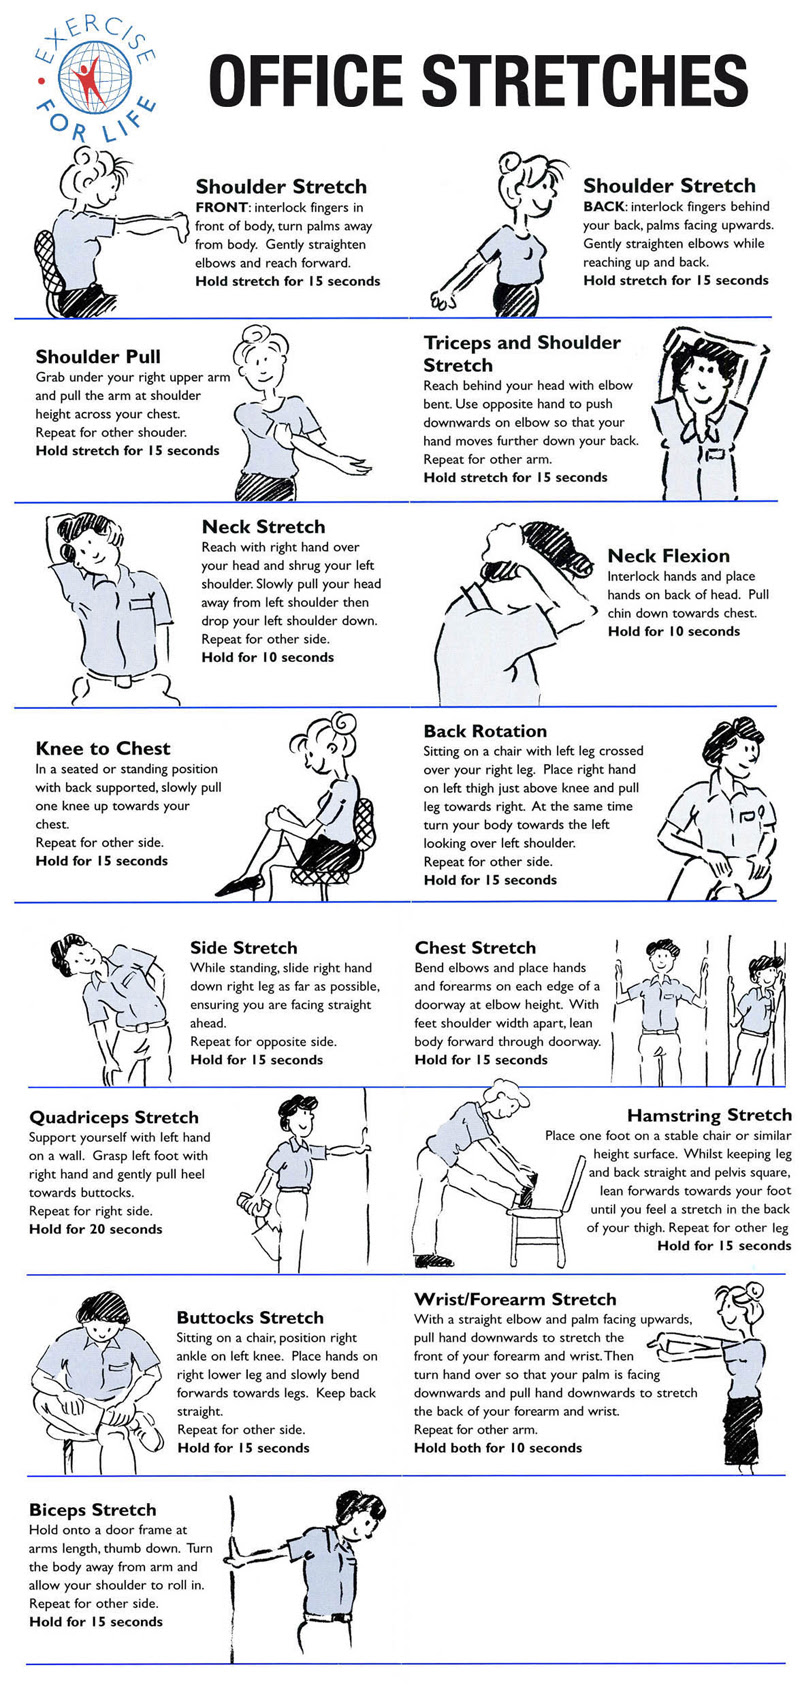 Focus on Physical - Stretches to Reduce Stress